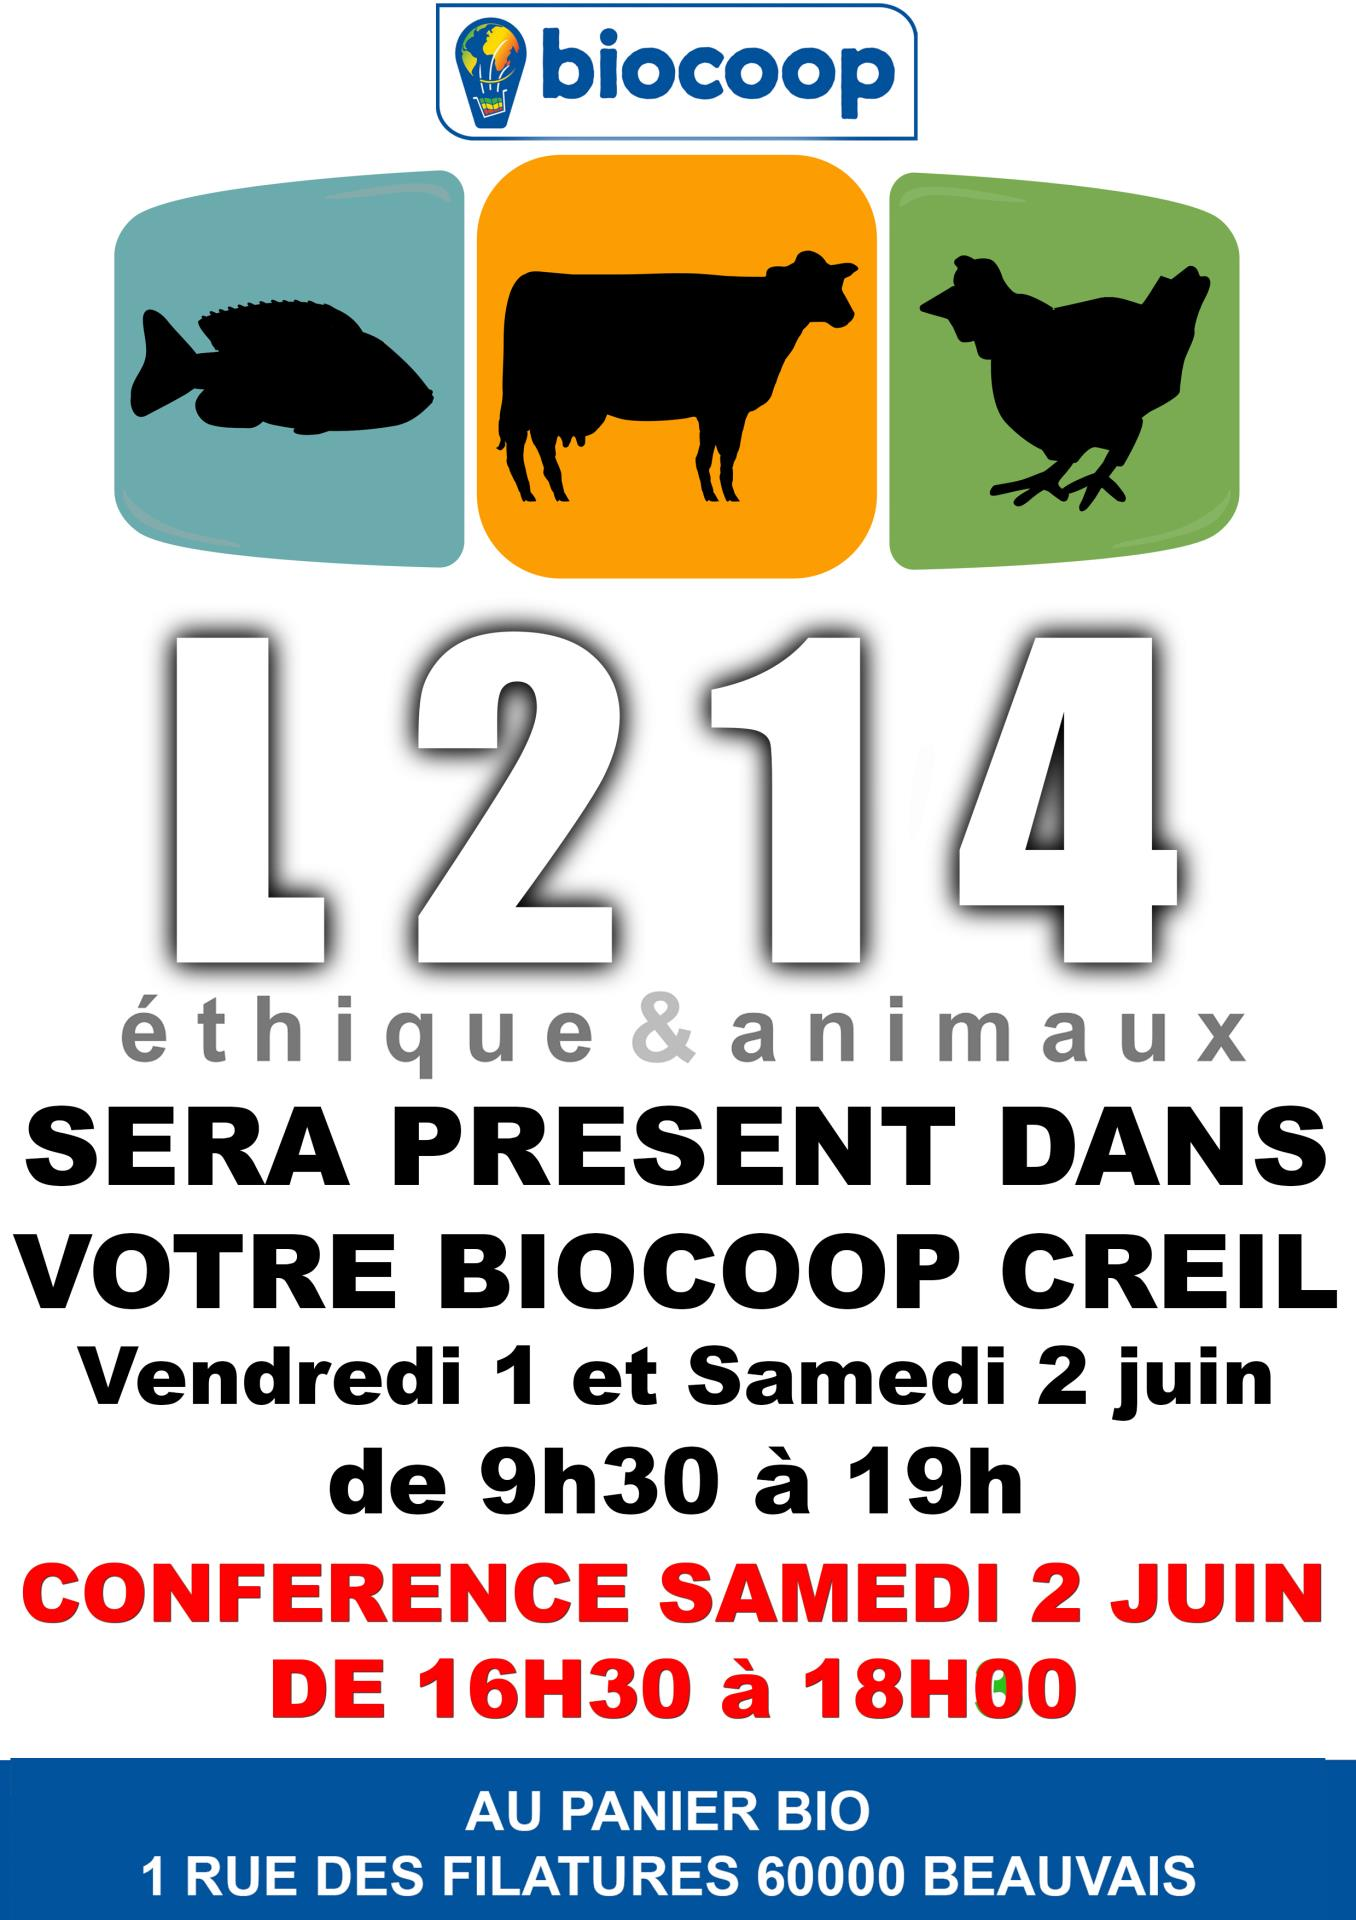 CONFERENCE ASSOCIATION L214 VILLAGE EXPO 01 ET 02 JUIN 2018